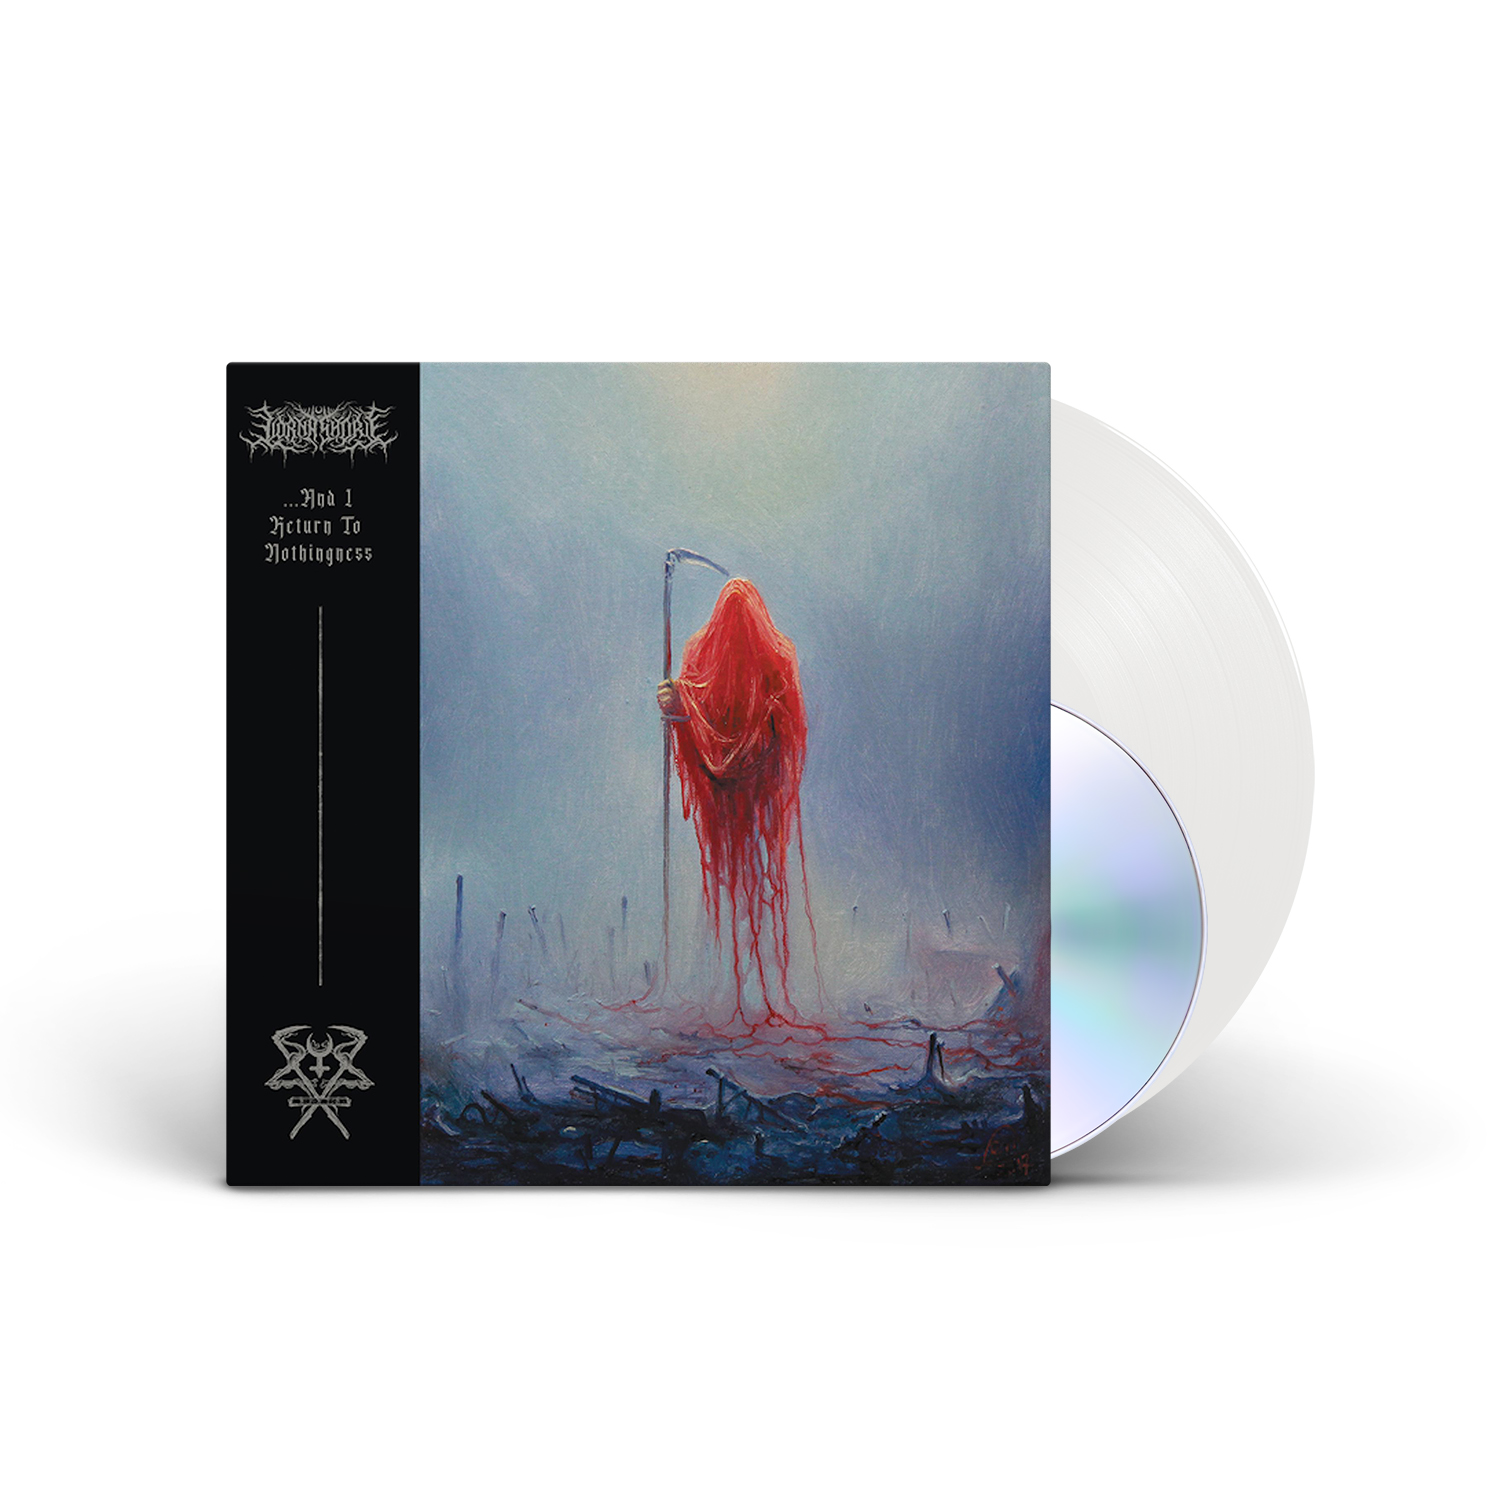 Lorna Shore - ...And I Return To Nothingness White LP + CD